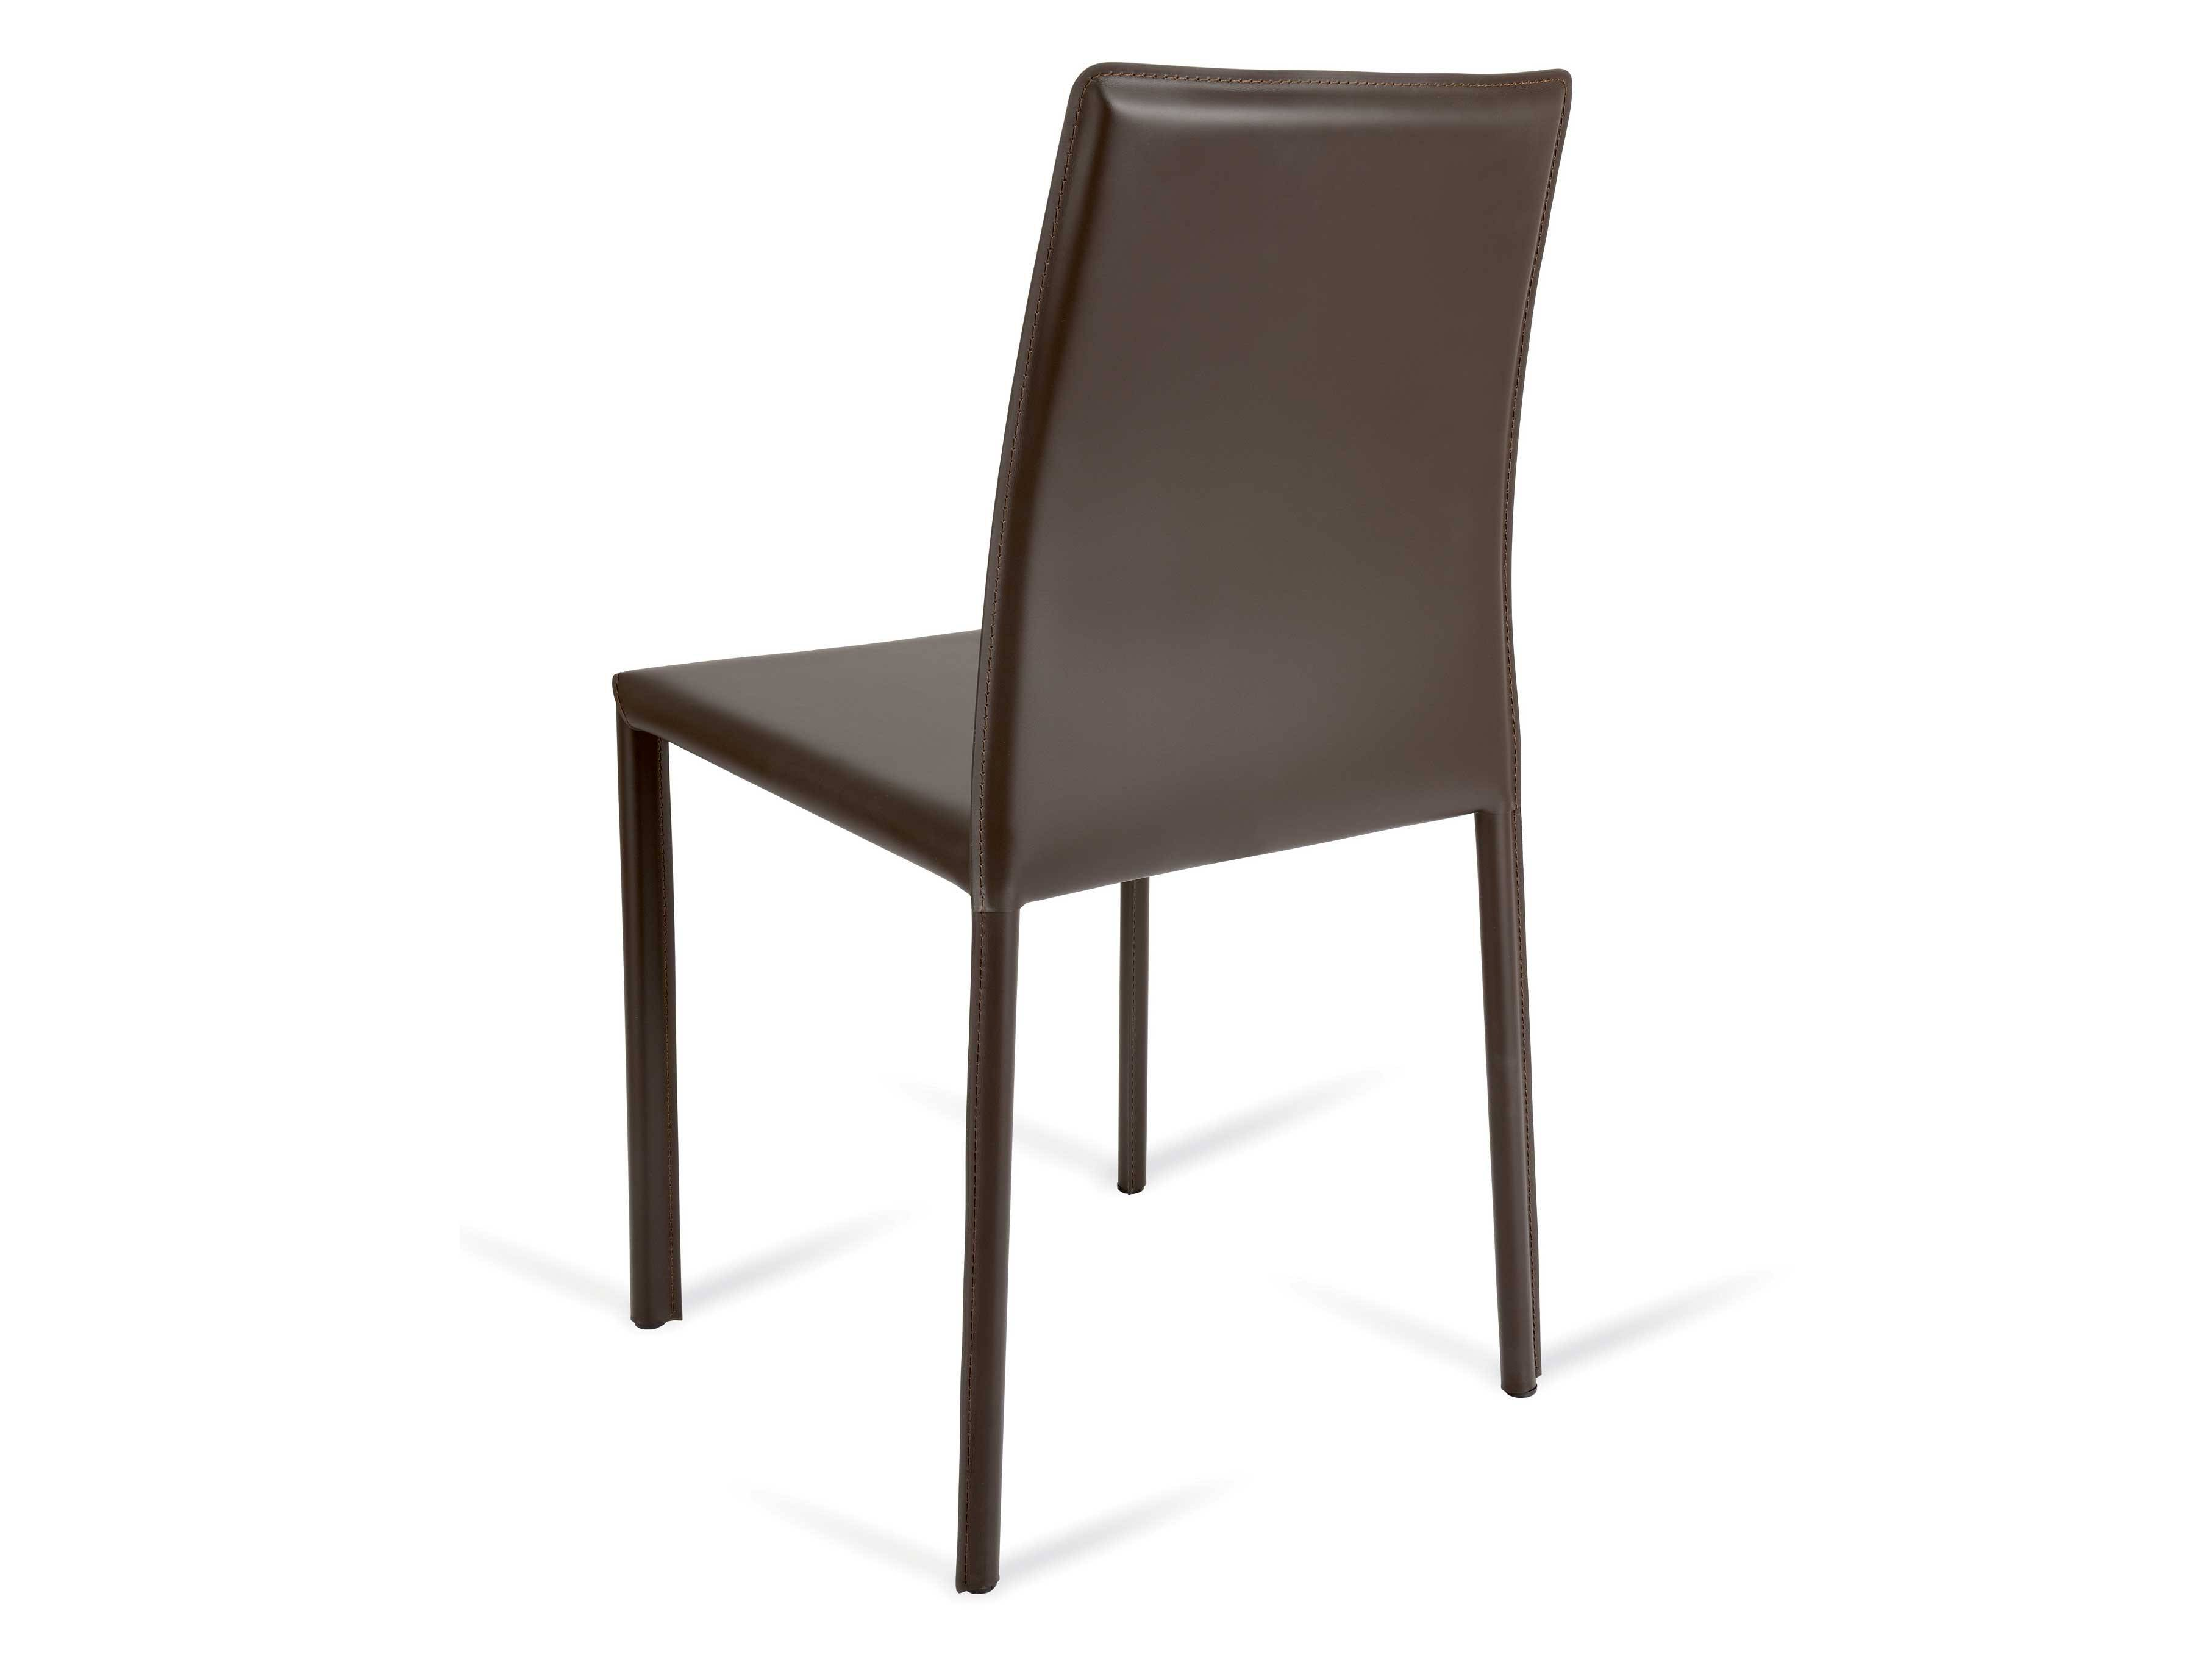 Cortina Low chair in bonded leather or genuine leather